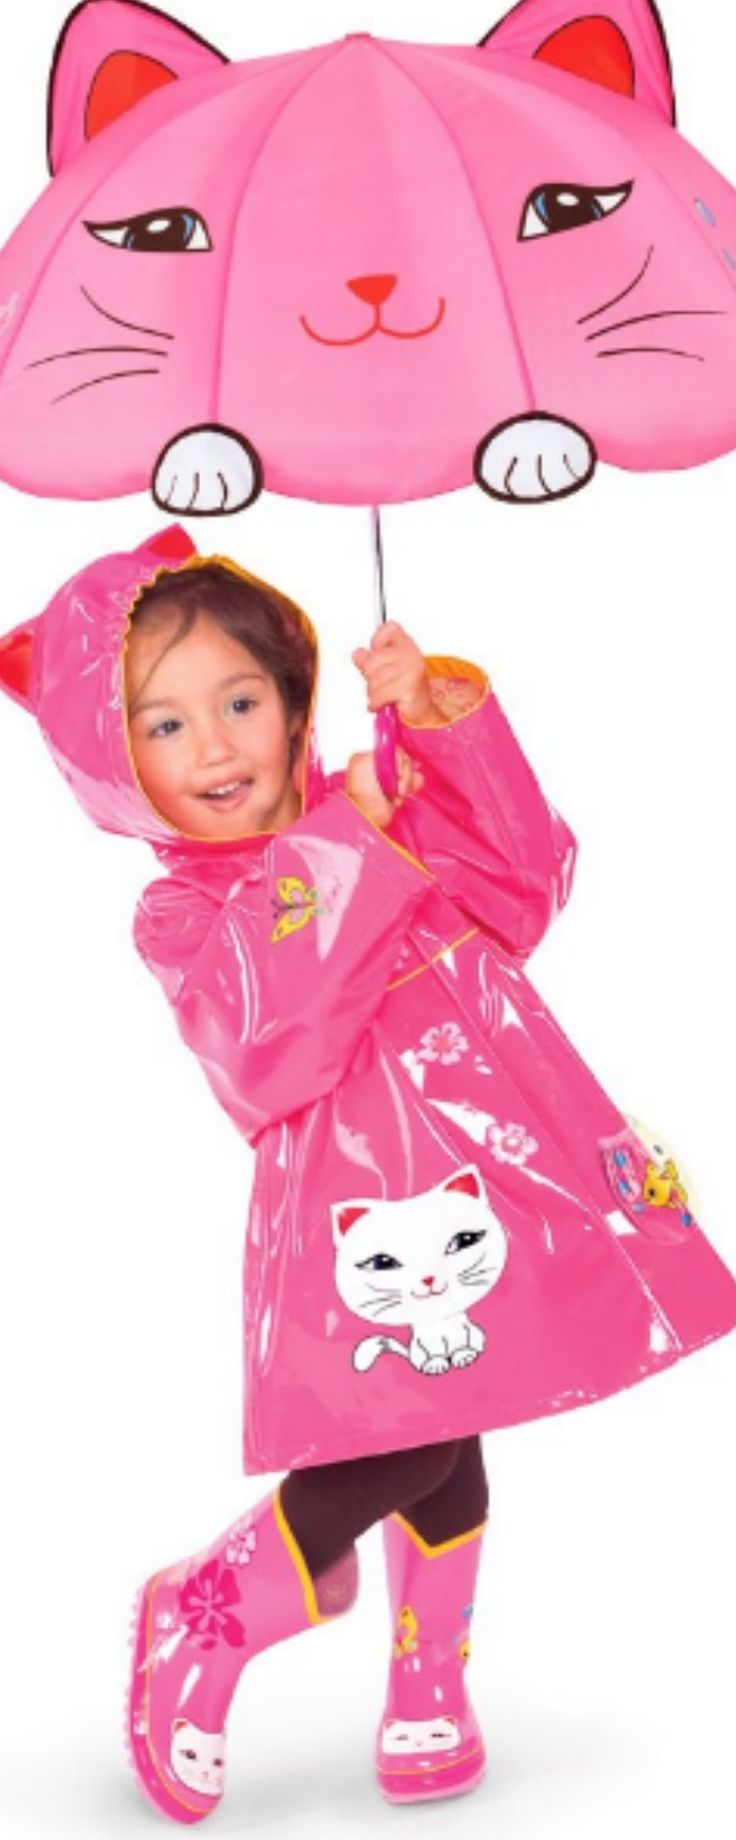 Children Raincoats with Matching Boots - Sweet little girls love dressing up, even in the rain. If her favorite thing in the world is cats, then this is the girls raincoat and boots set you need to get for her.